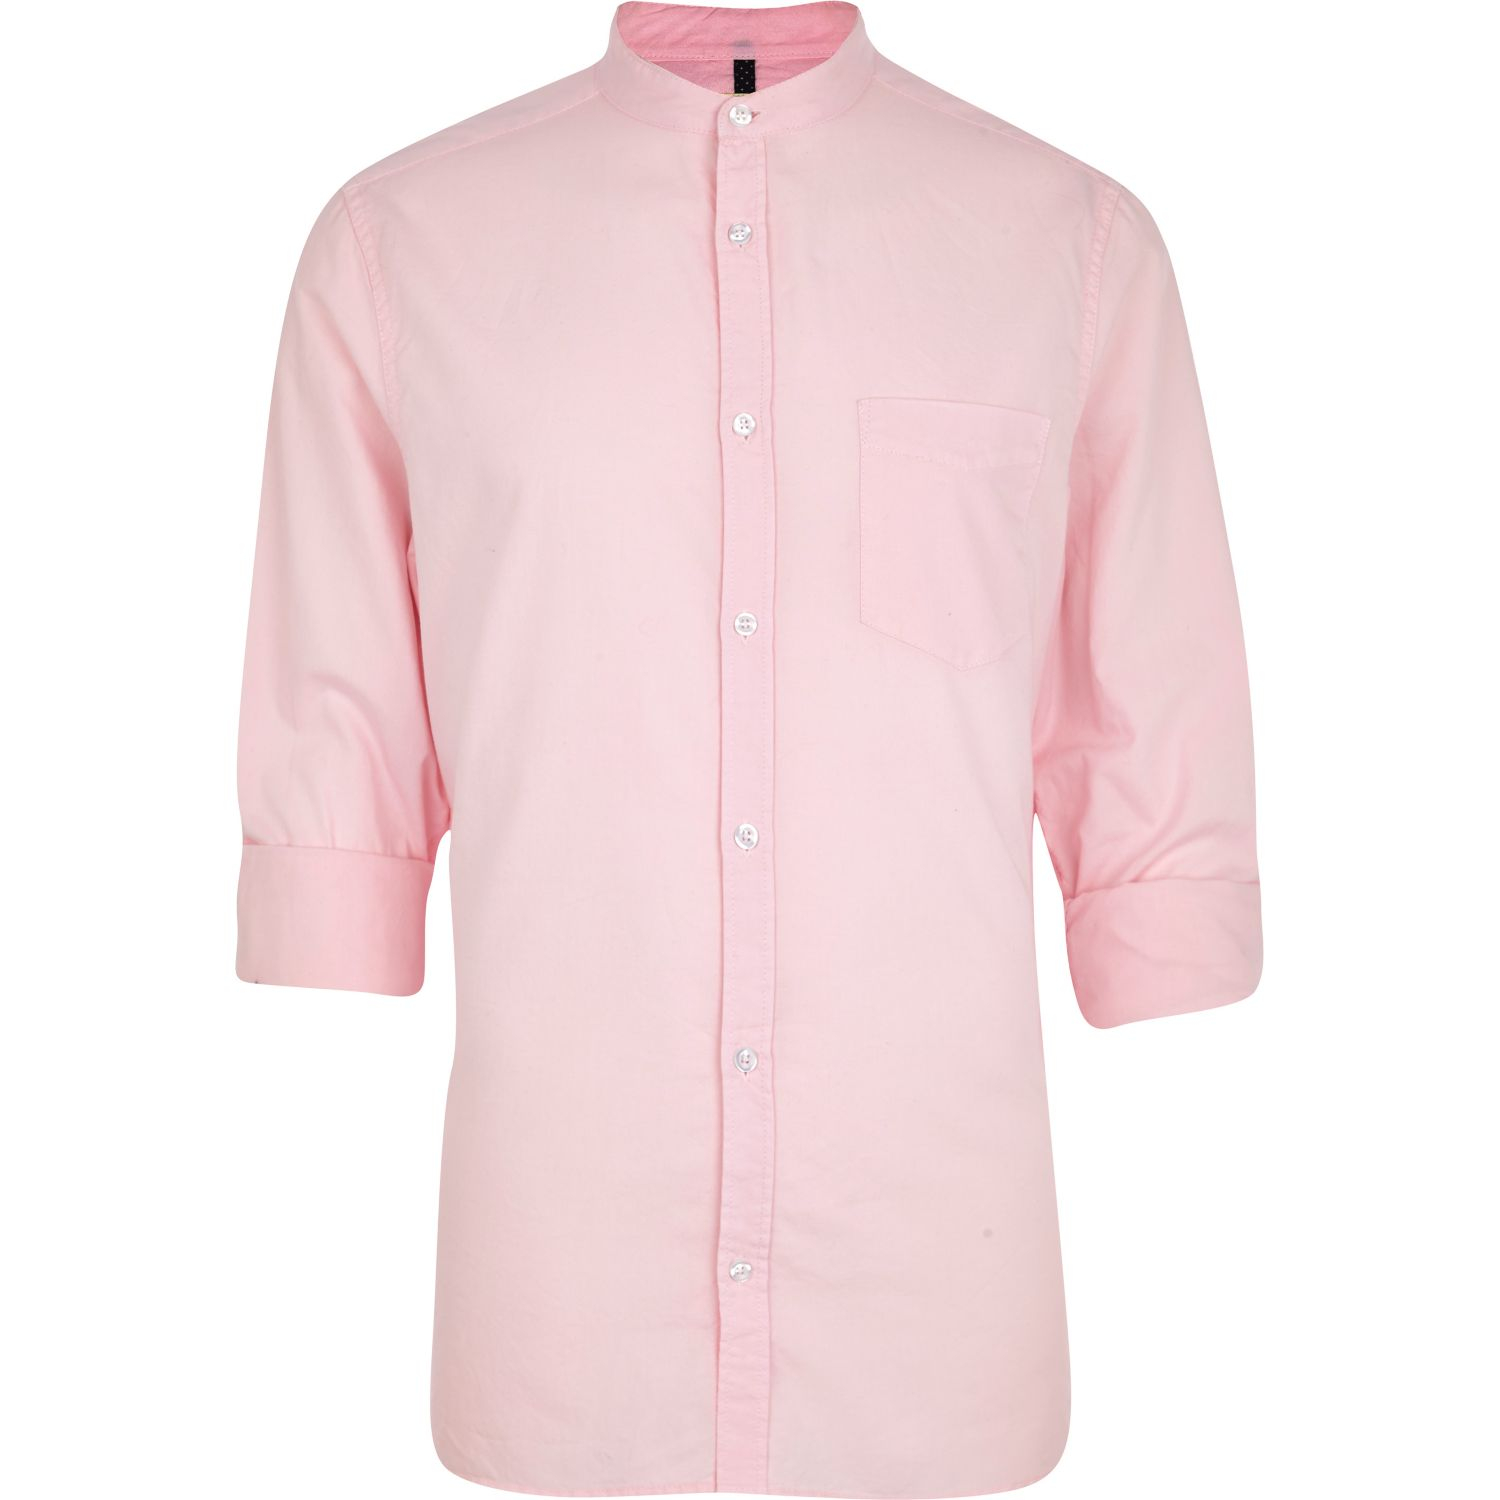 River island pink grandad collar oxford shirt in pink for for Pink oxford shirt men